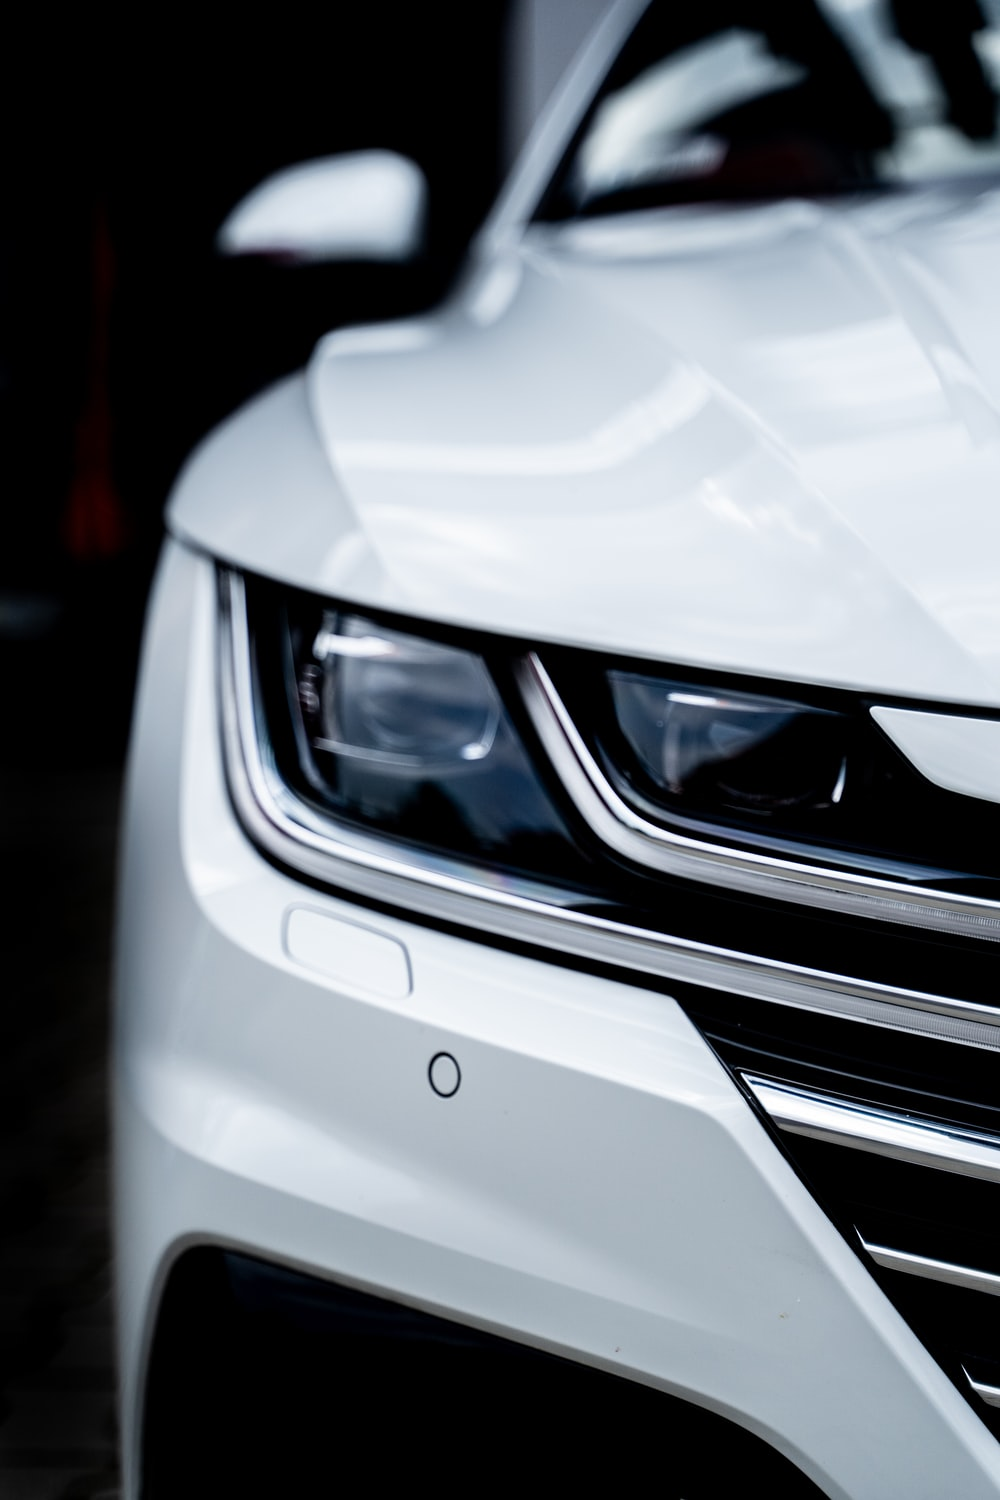 white car in close up photography